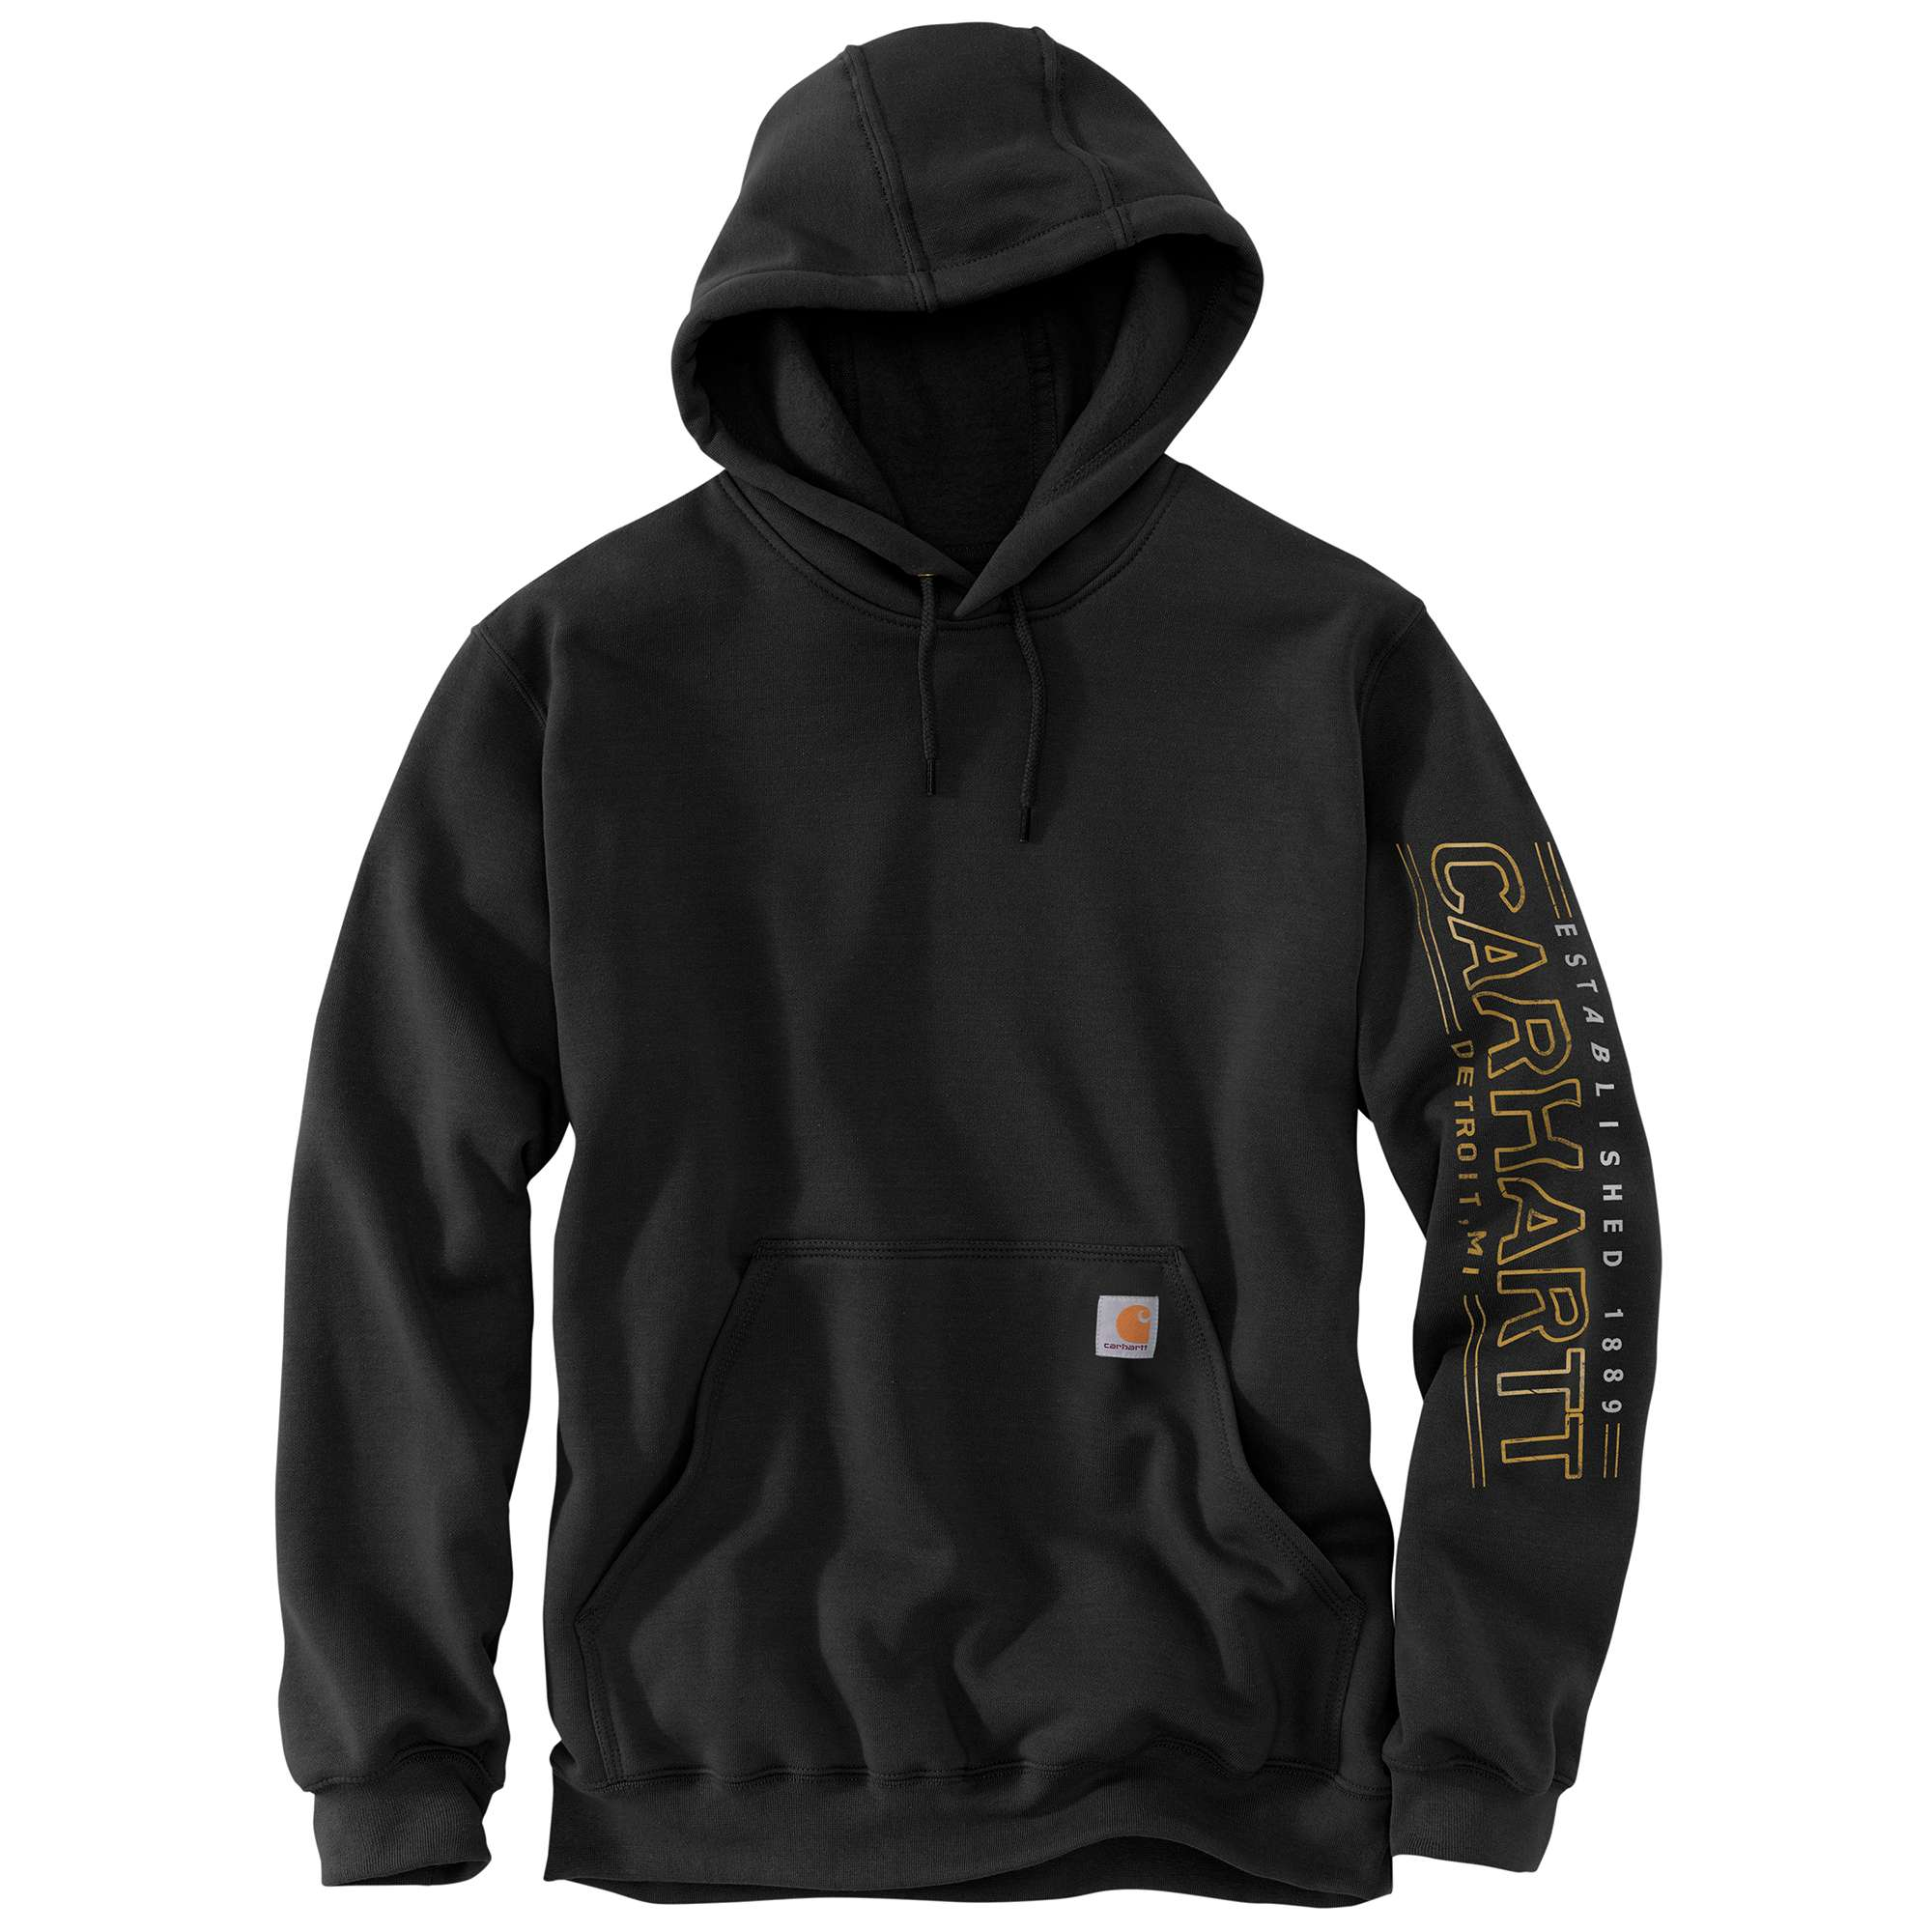 MEN'S MIDWEIGHT DETROIT SLEEVE GRAPHIC HOODED SWEATSHIRT